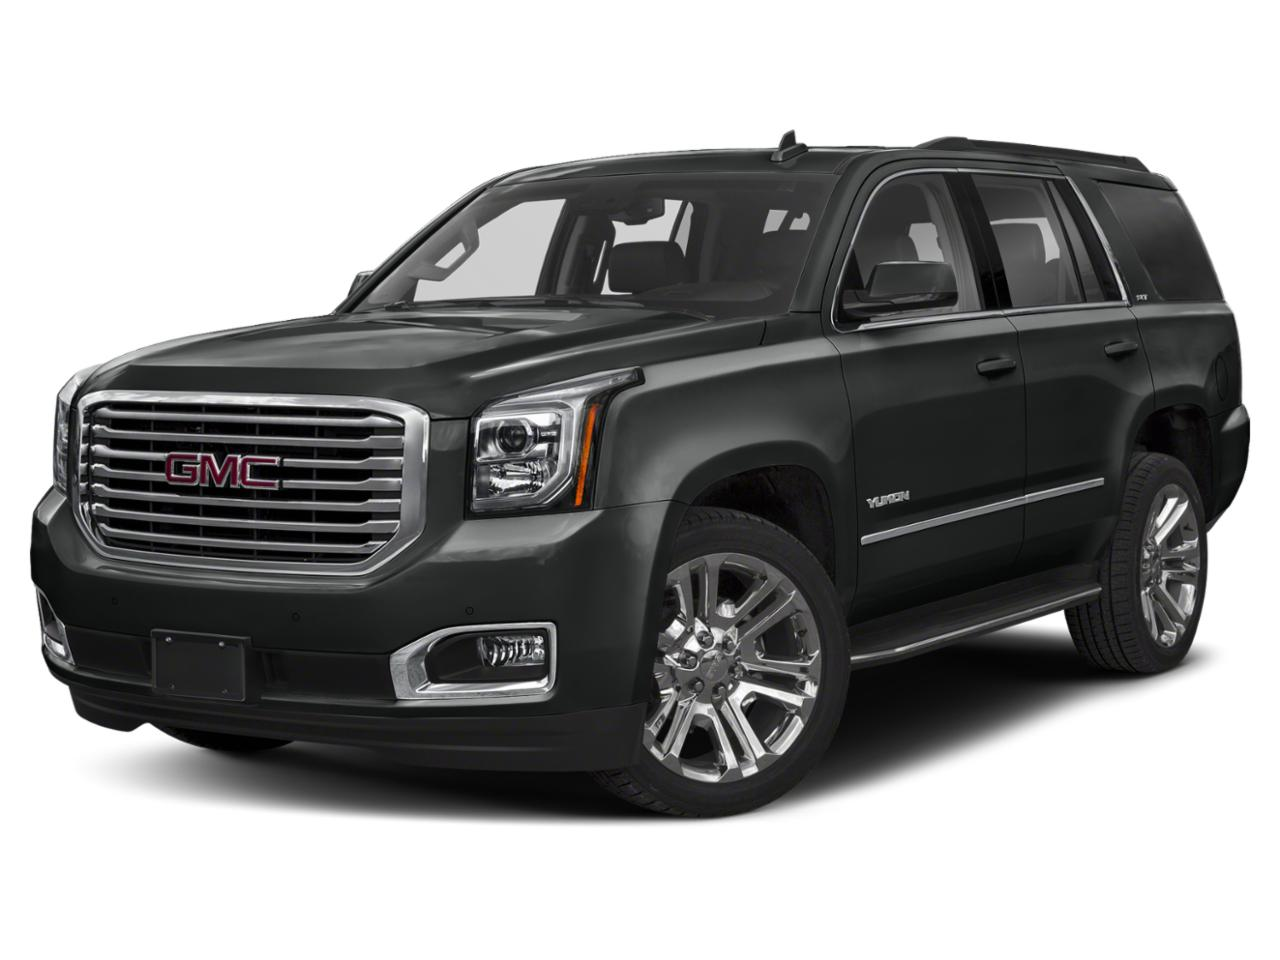 2020 GMC Yukon Vehicle Photo in Lyndhurst, NJ 07071